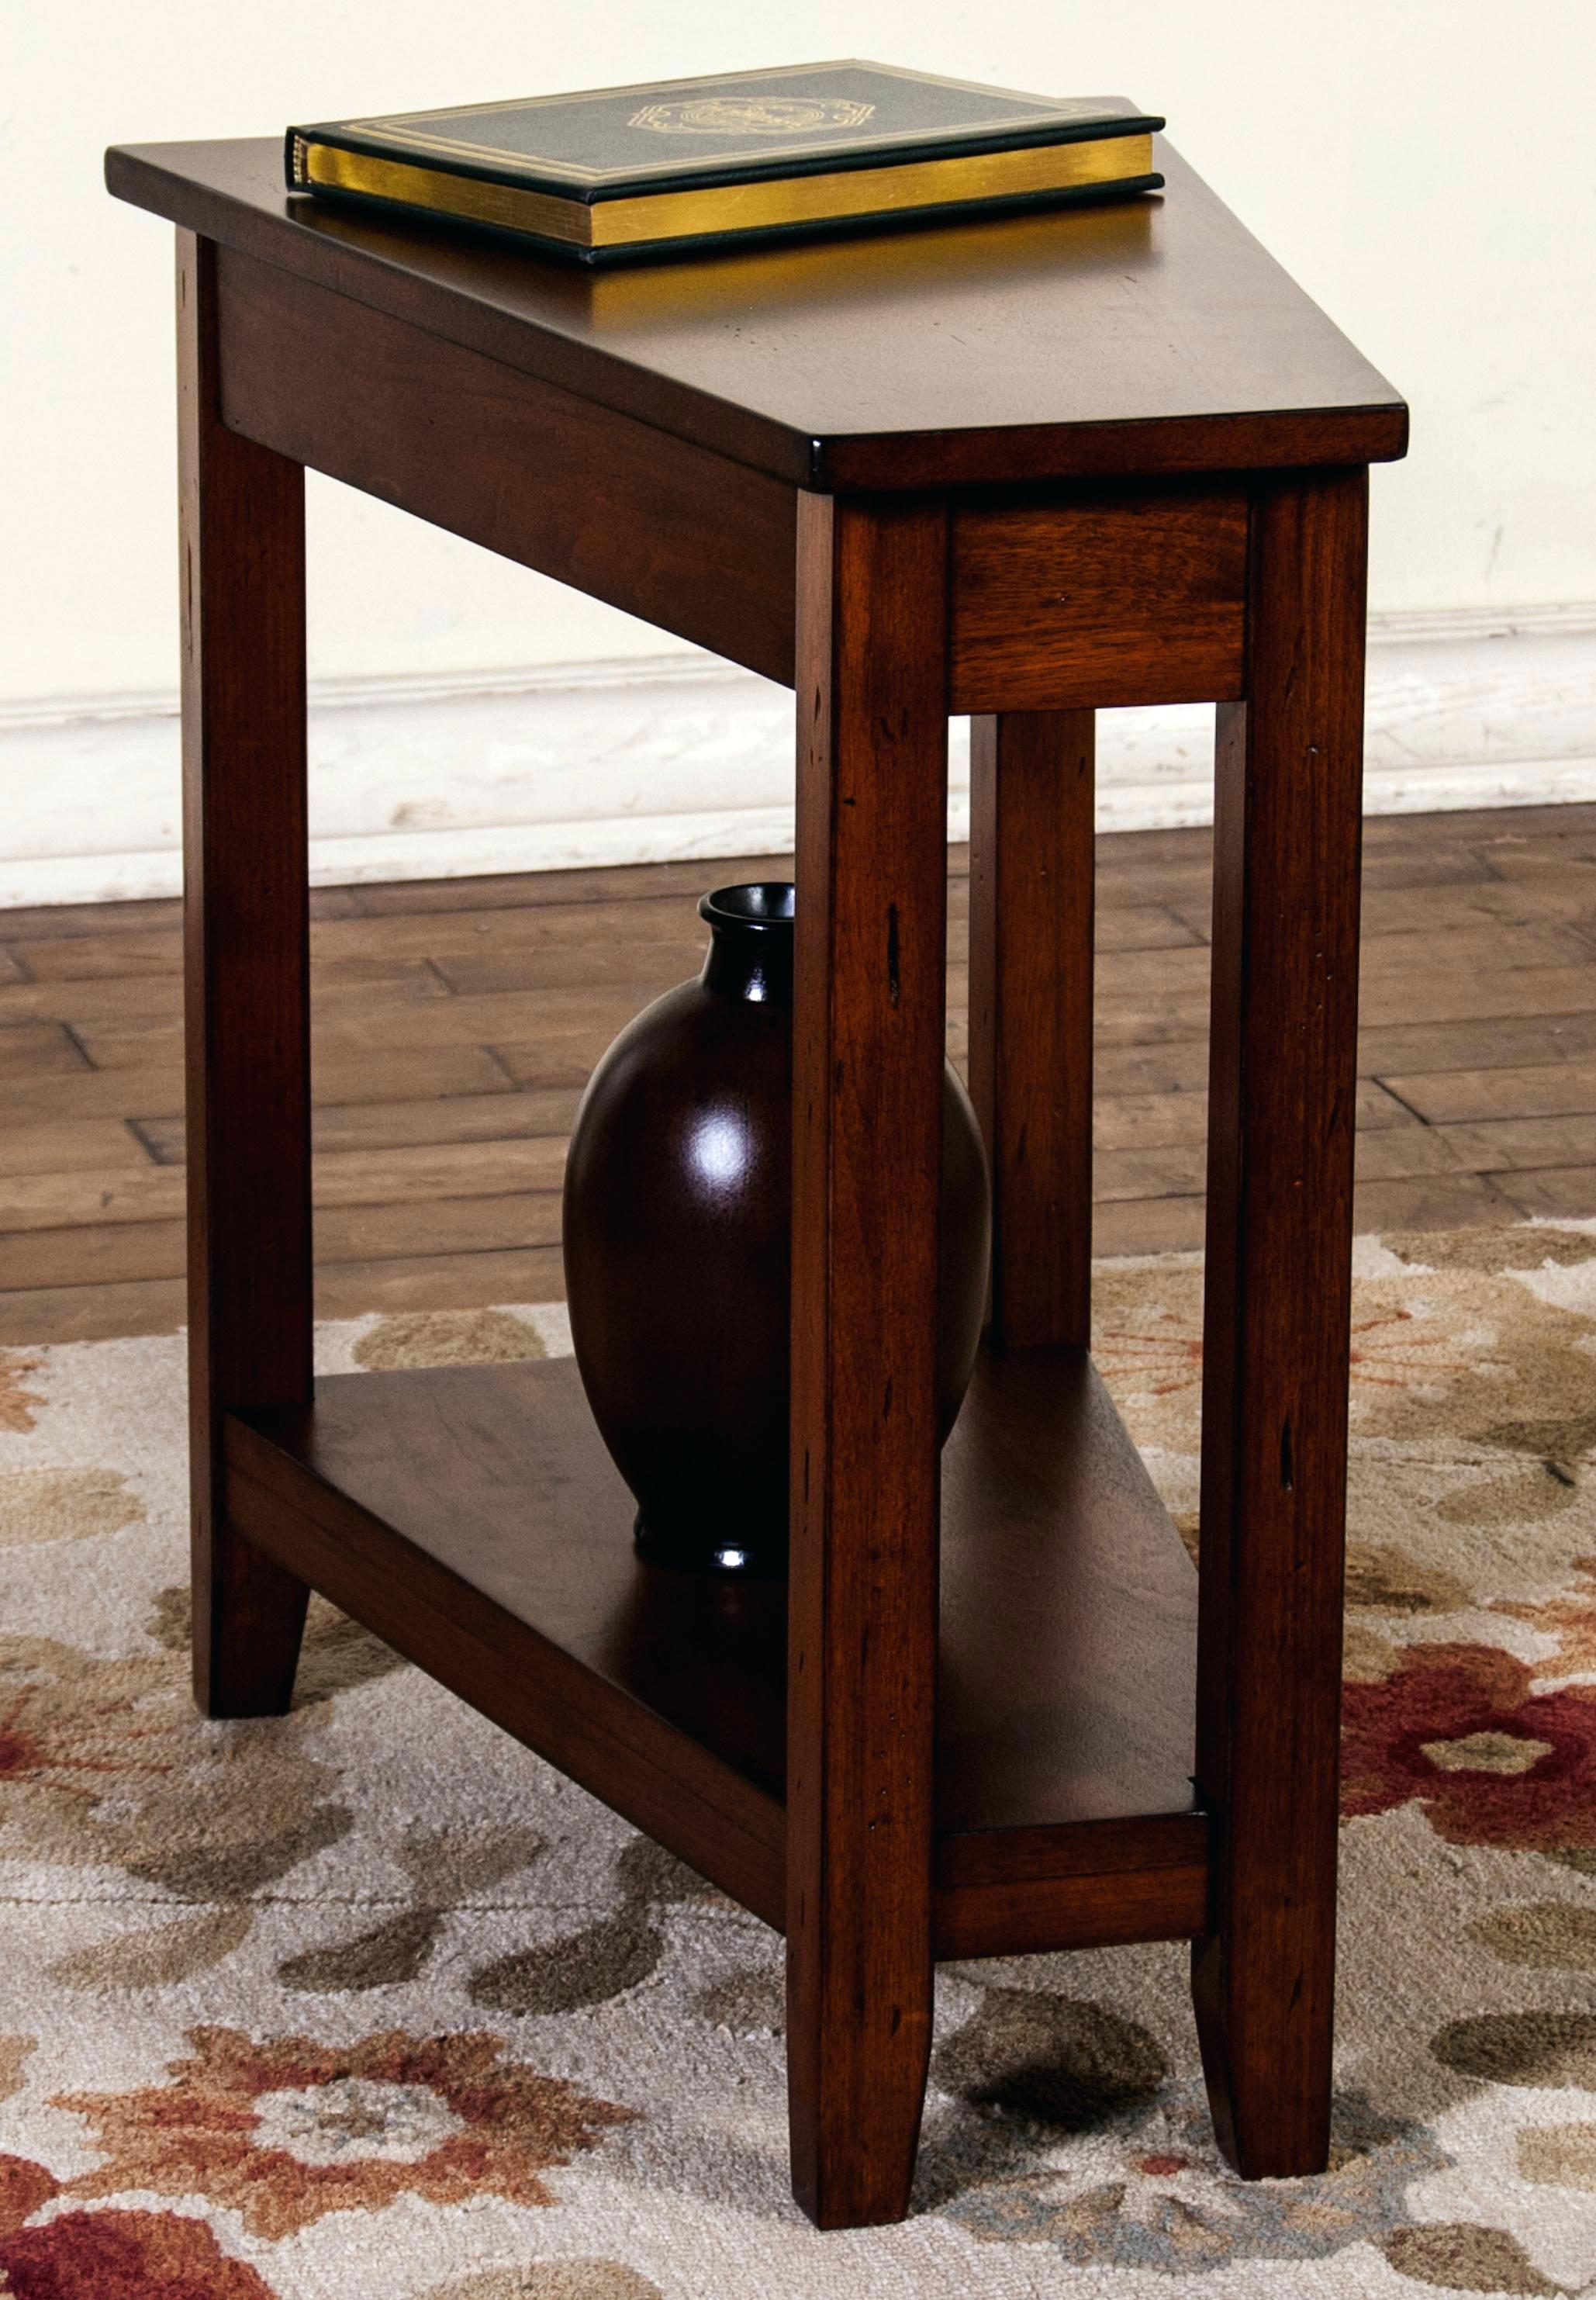 wedge end table universal furniture with drawer coop storage tables ashley chair and ott made from wooden pallets floor homesense clocks foot inexpensive log leather out style